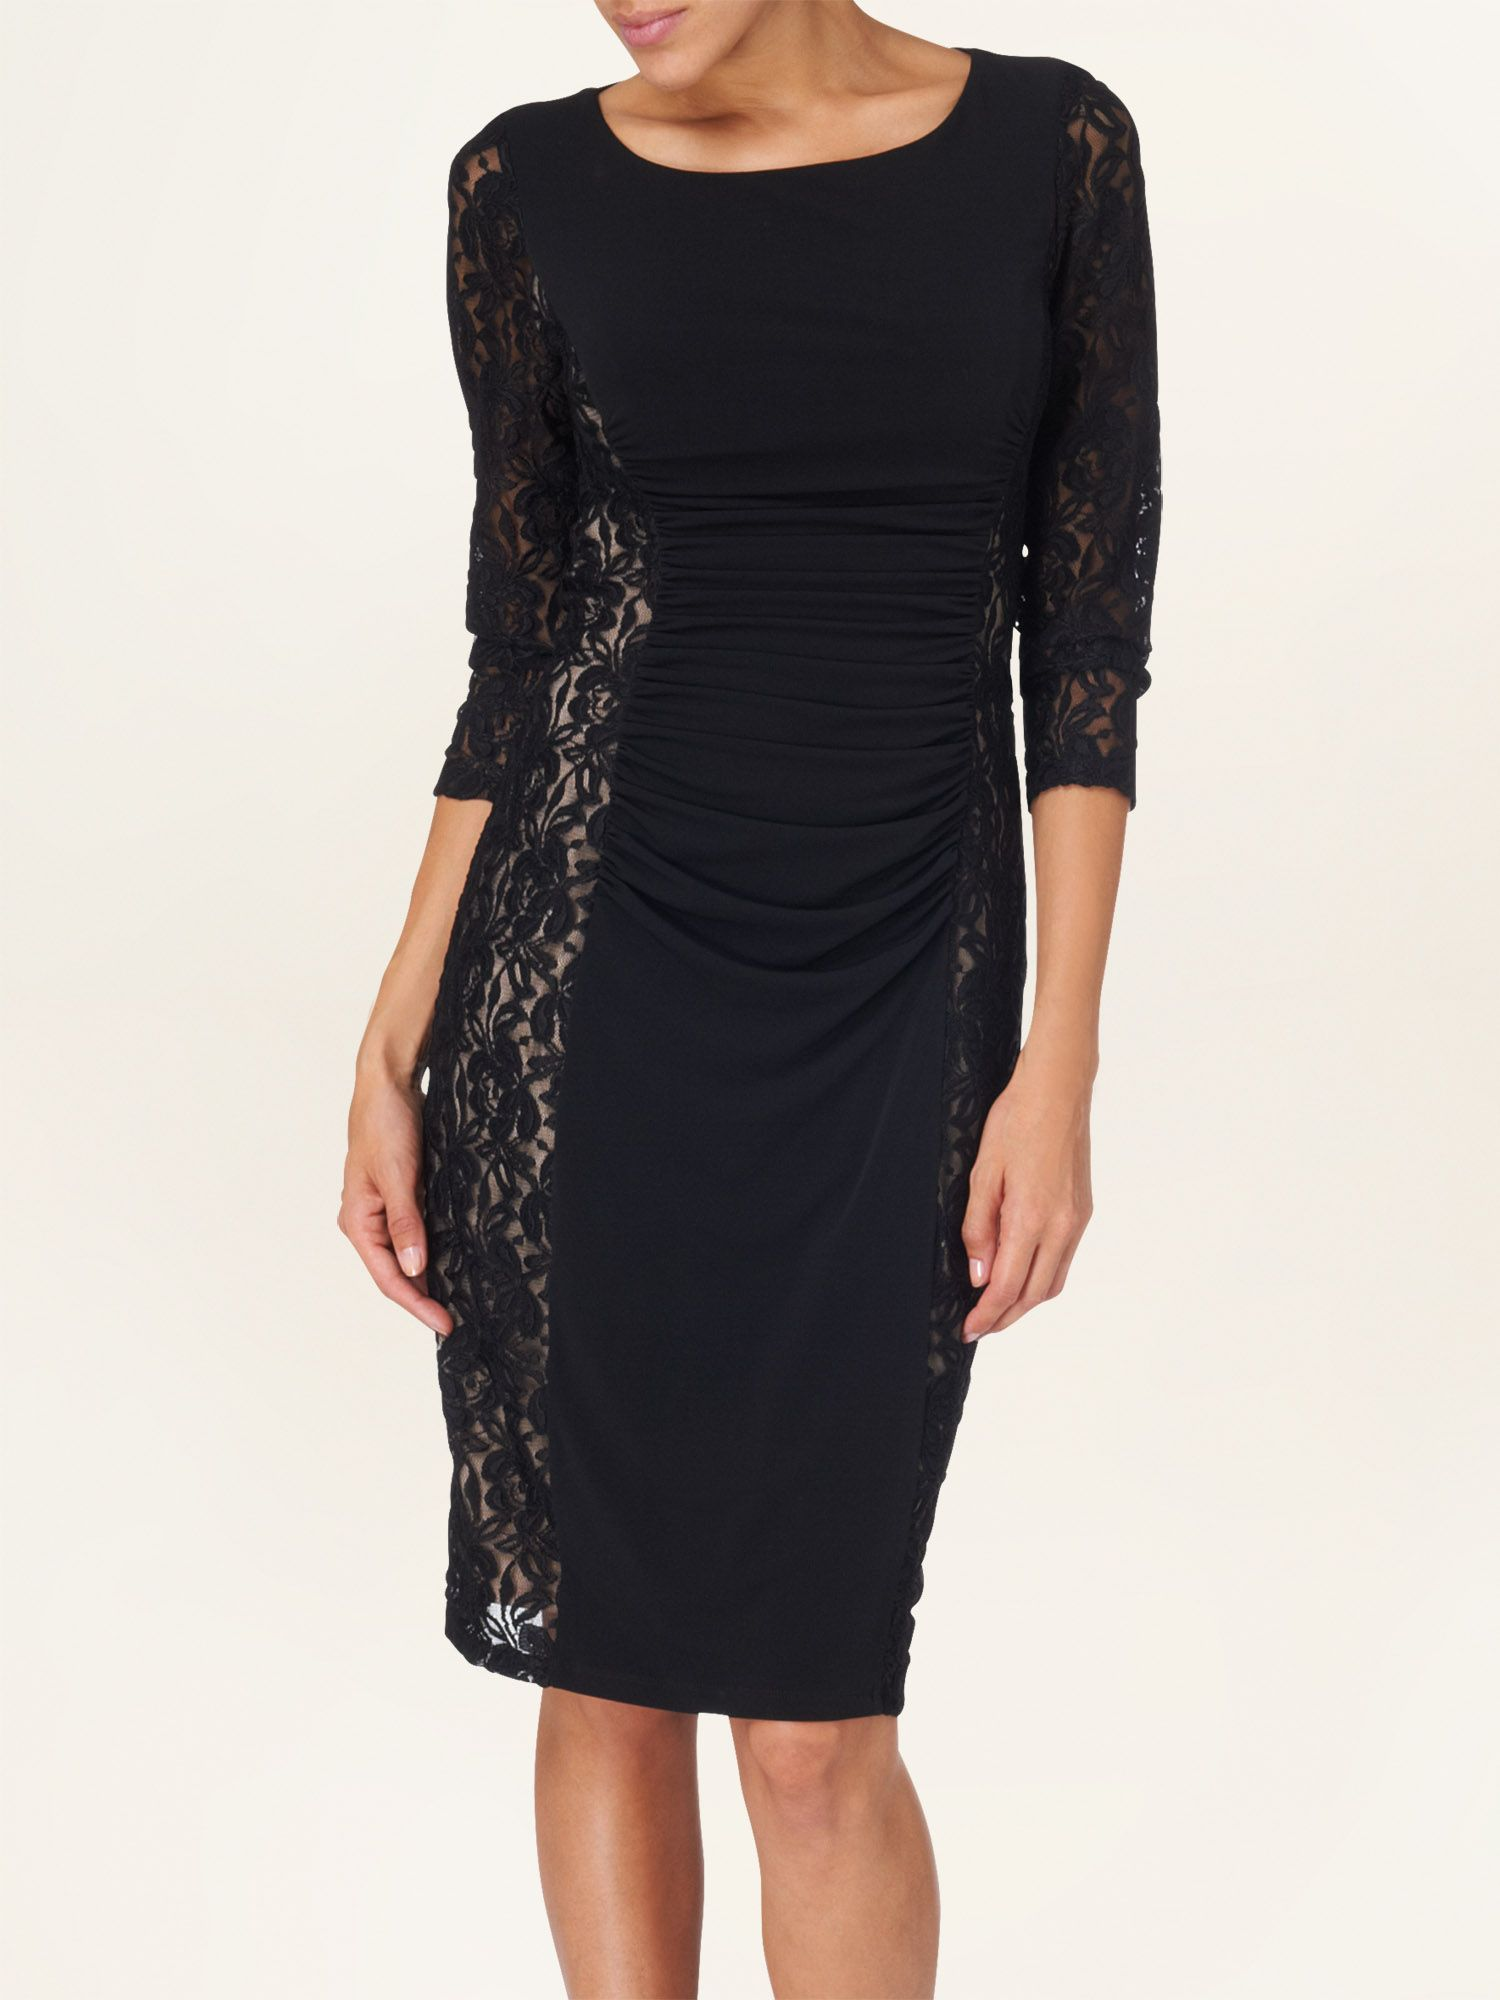 Latoya lace dress